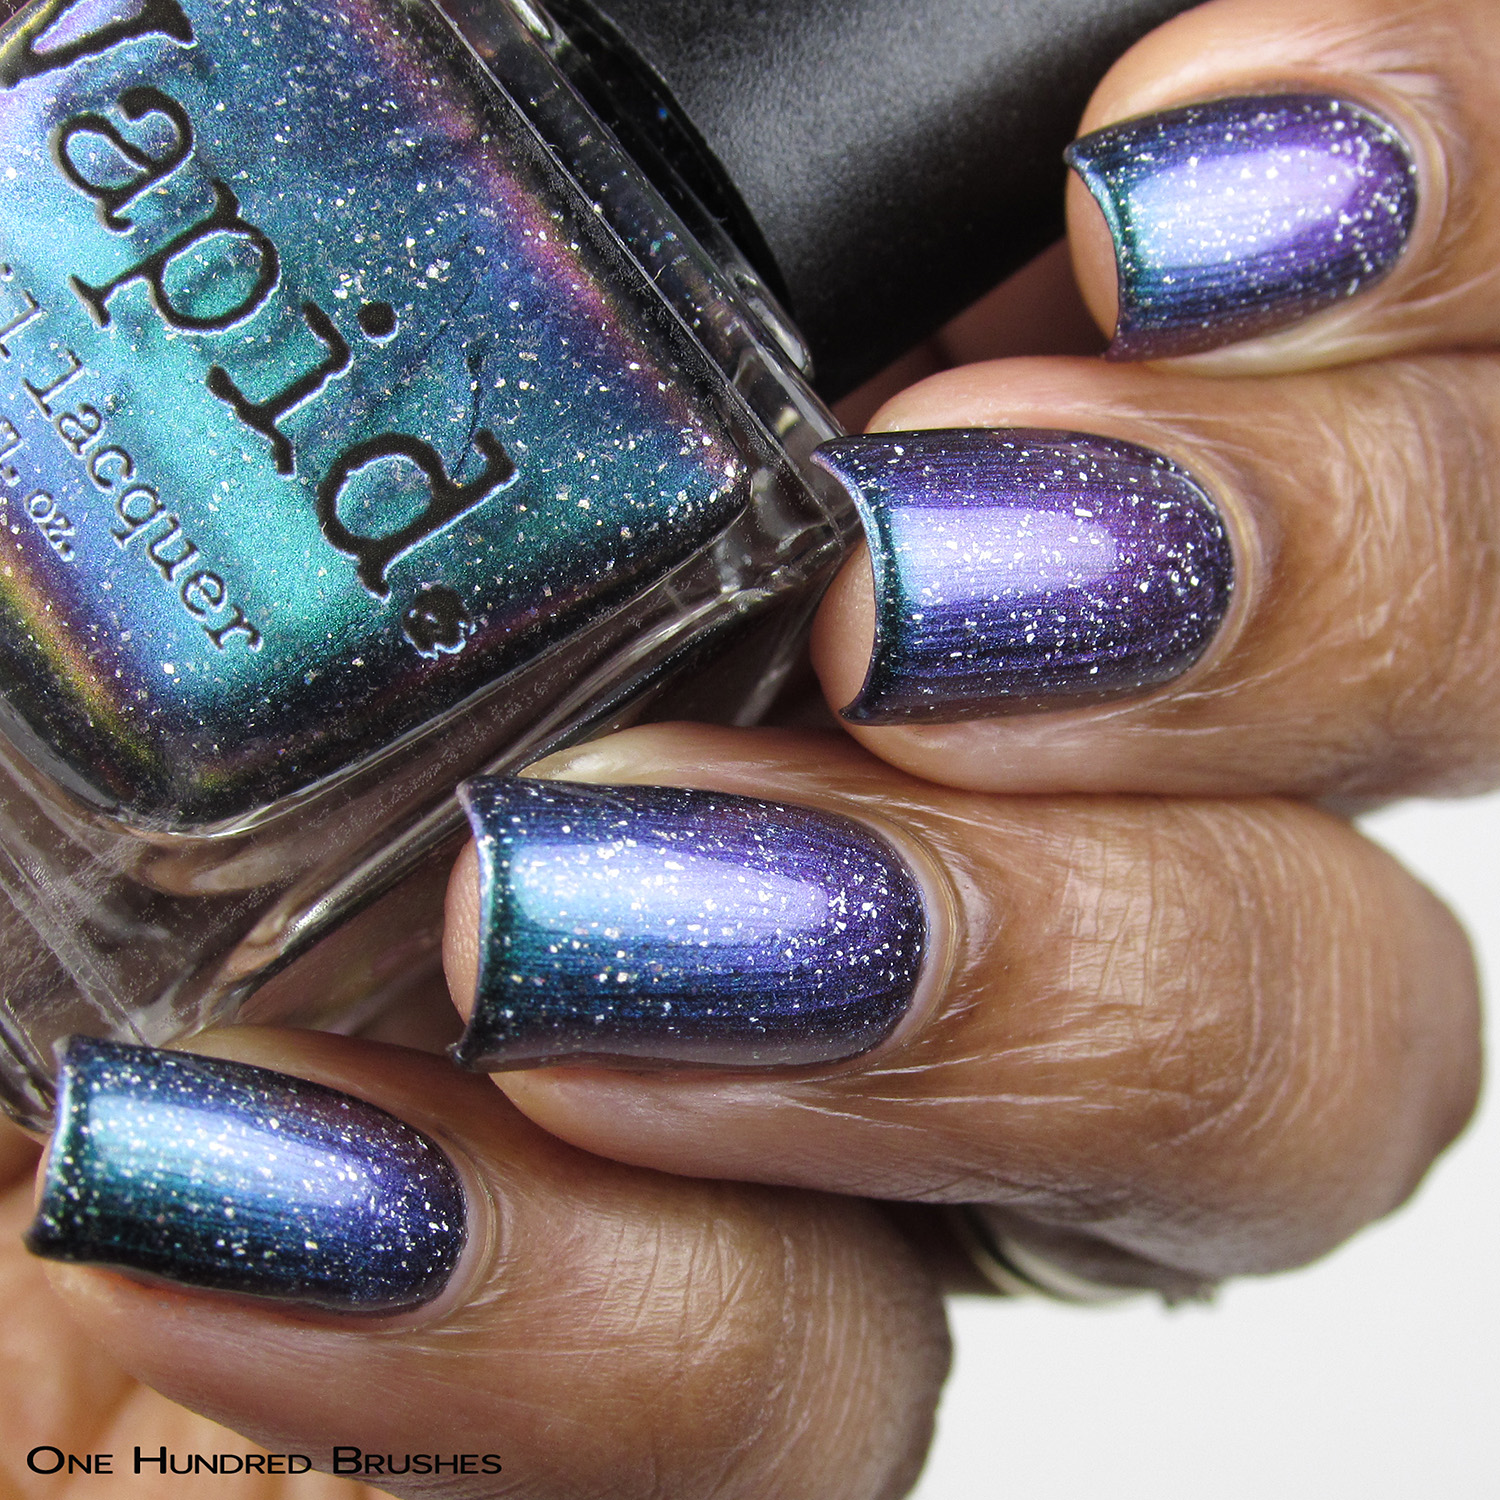 Canis Majoris Dirty - Cosmos Collection 2019 - Vapid Lacquer